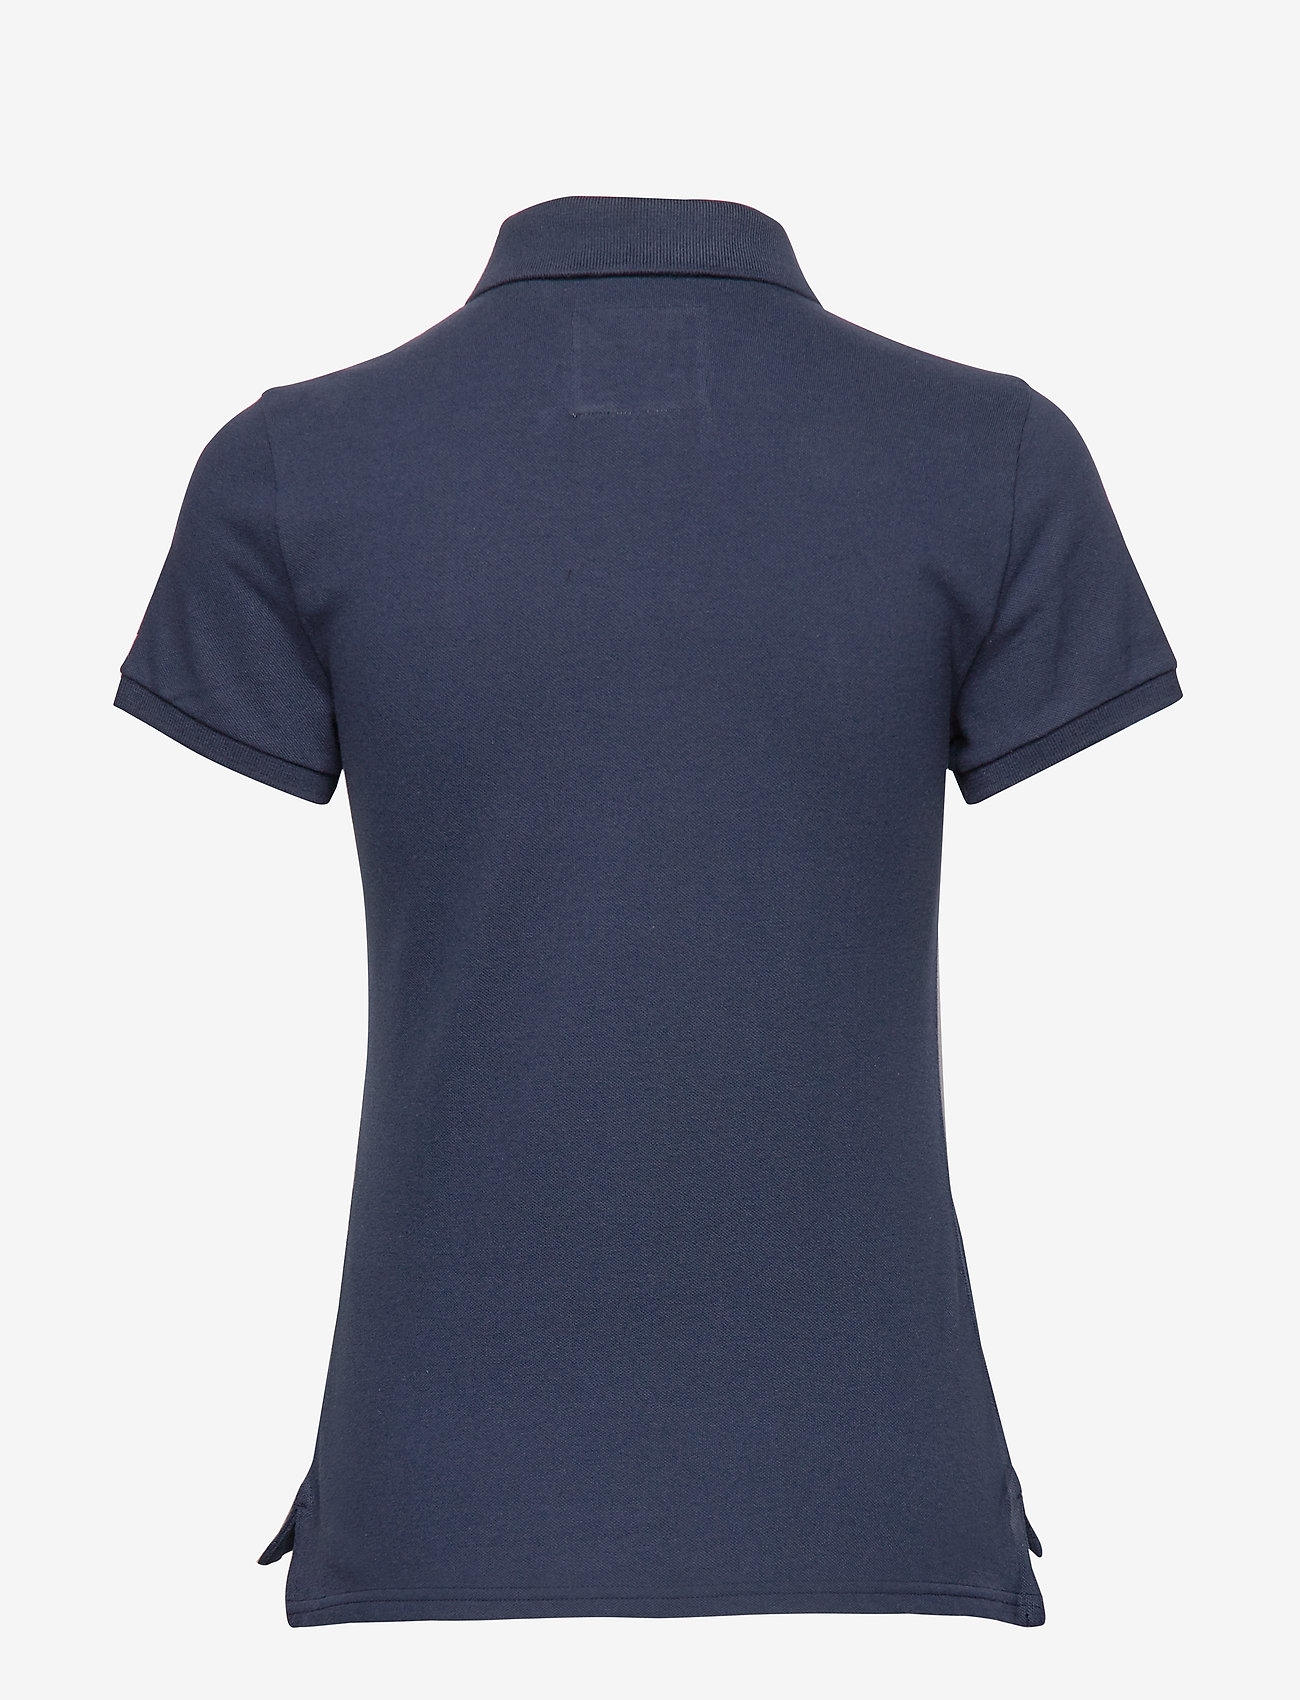 Abercrombie & Fitch - Polo - poloshirts - med blue dd - 1